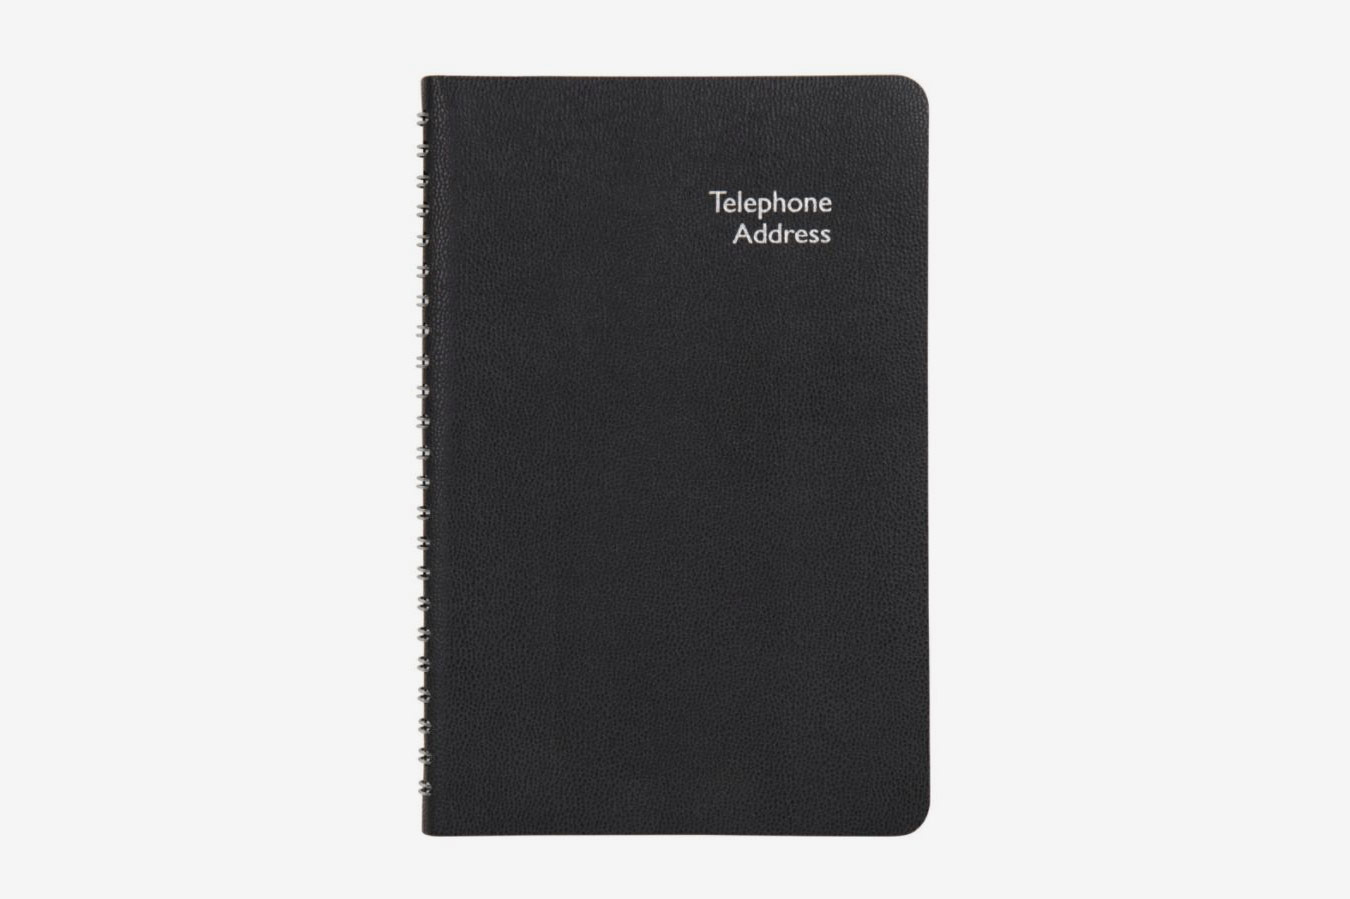 Office Depot Pajco Pocket Telephone/Address Book